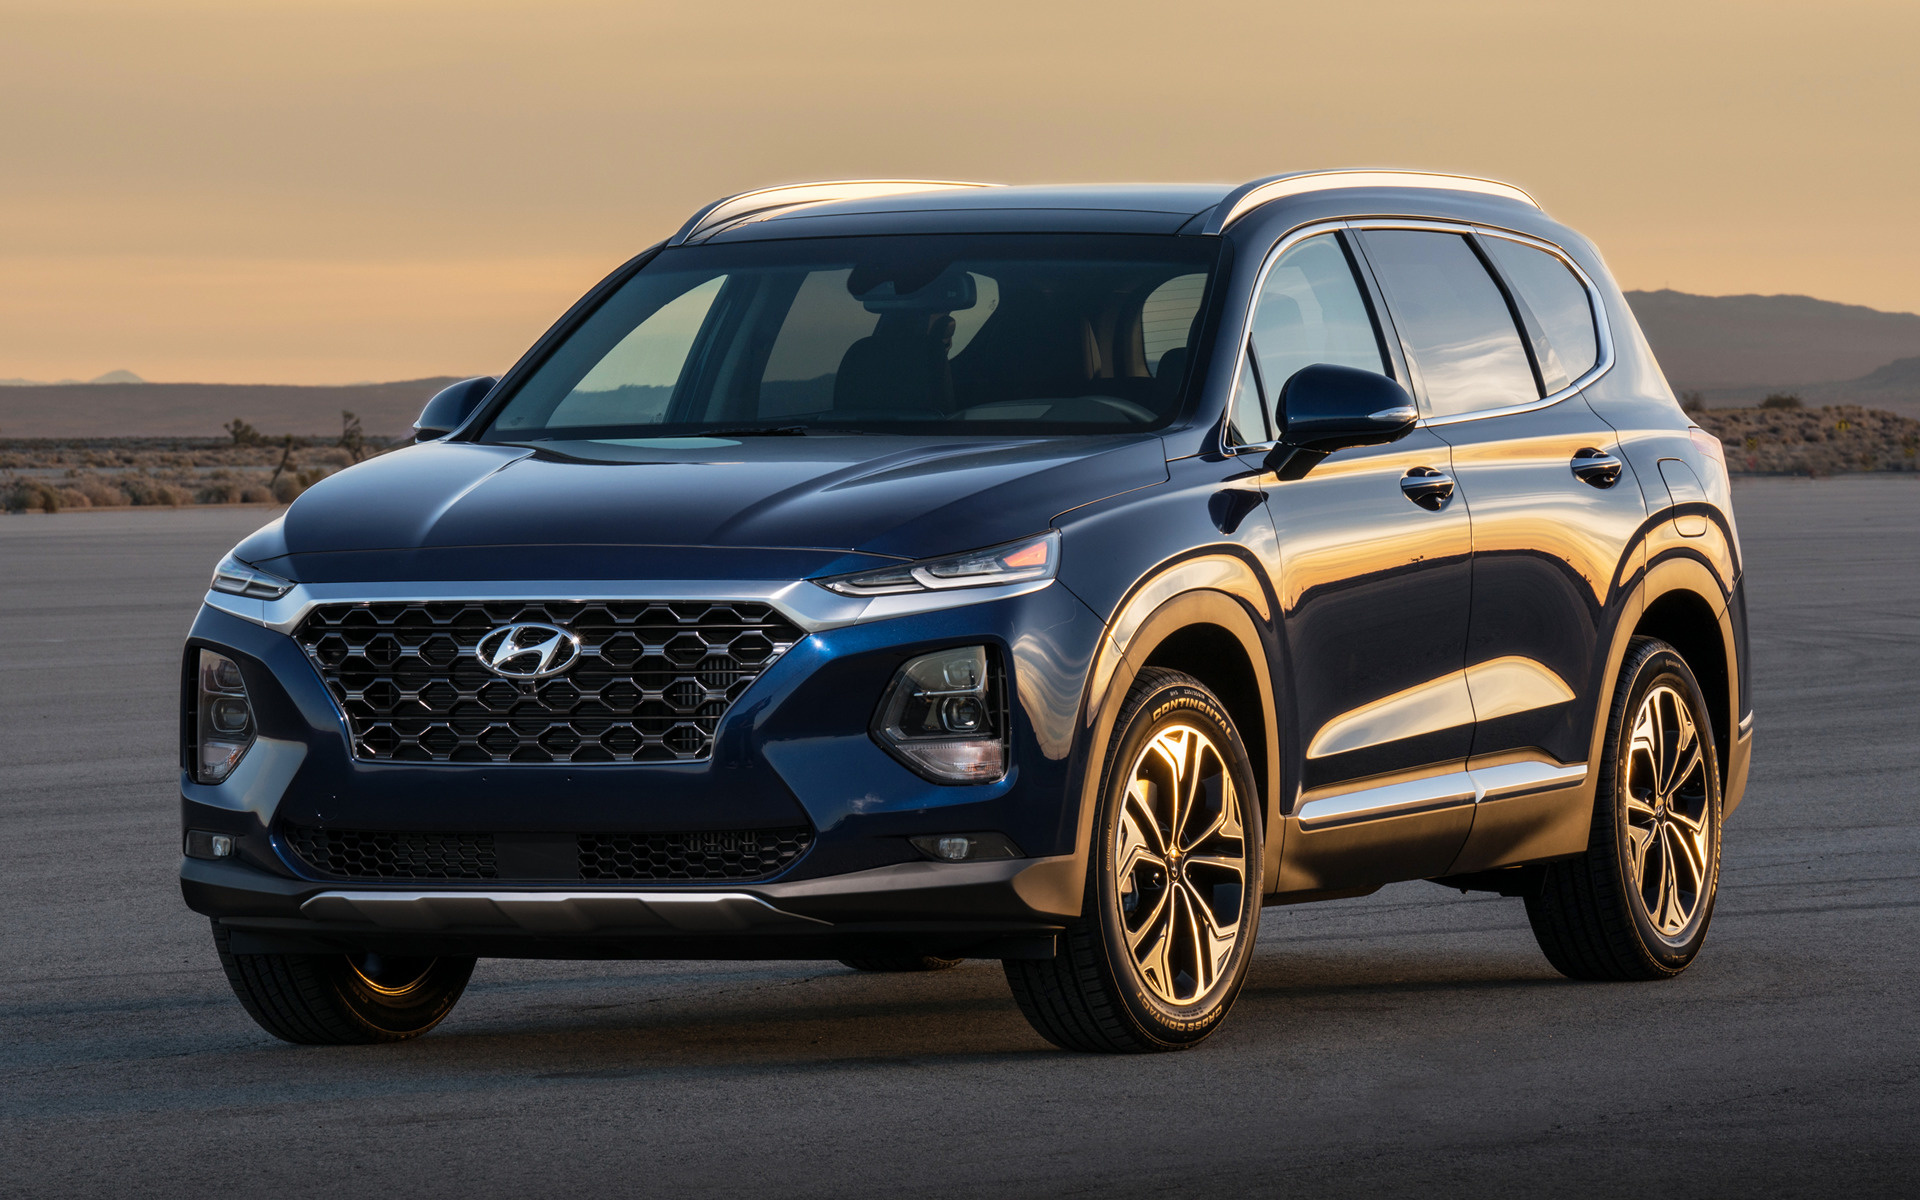 Hyundai Santa Fe (2019) US Wallpapers and HD Images - Car ...